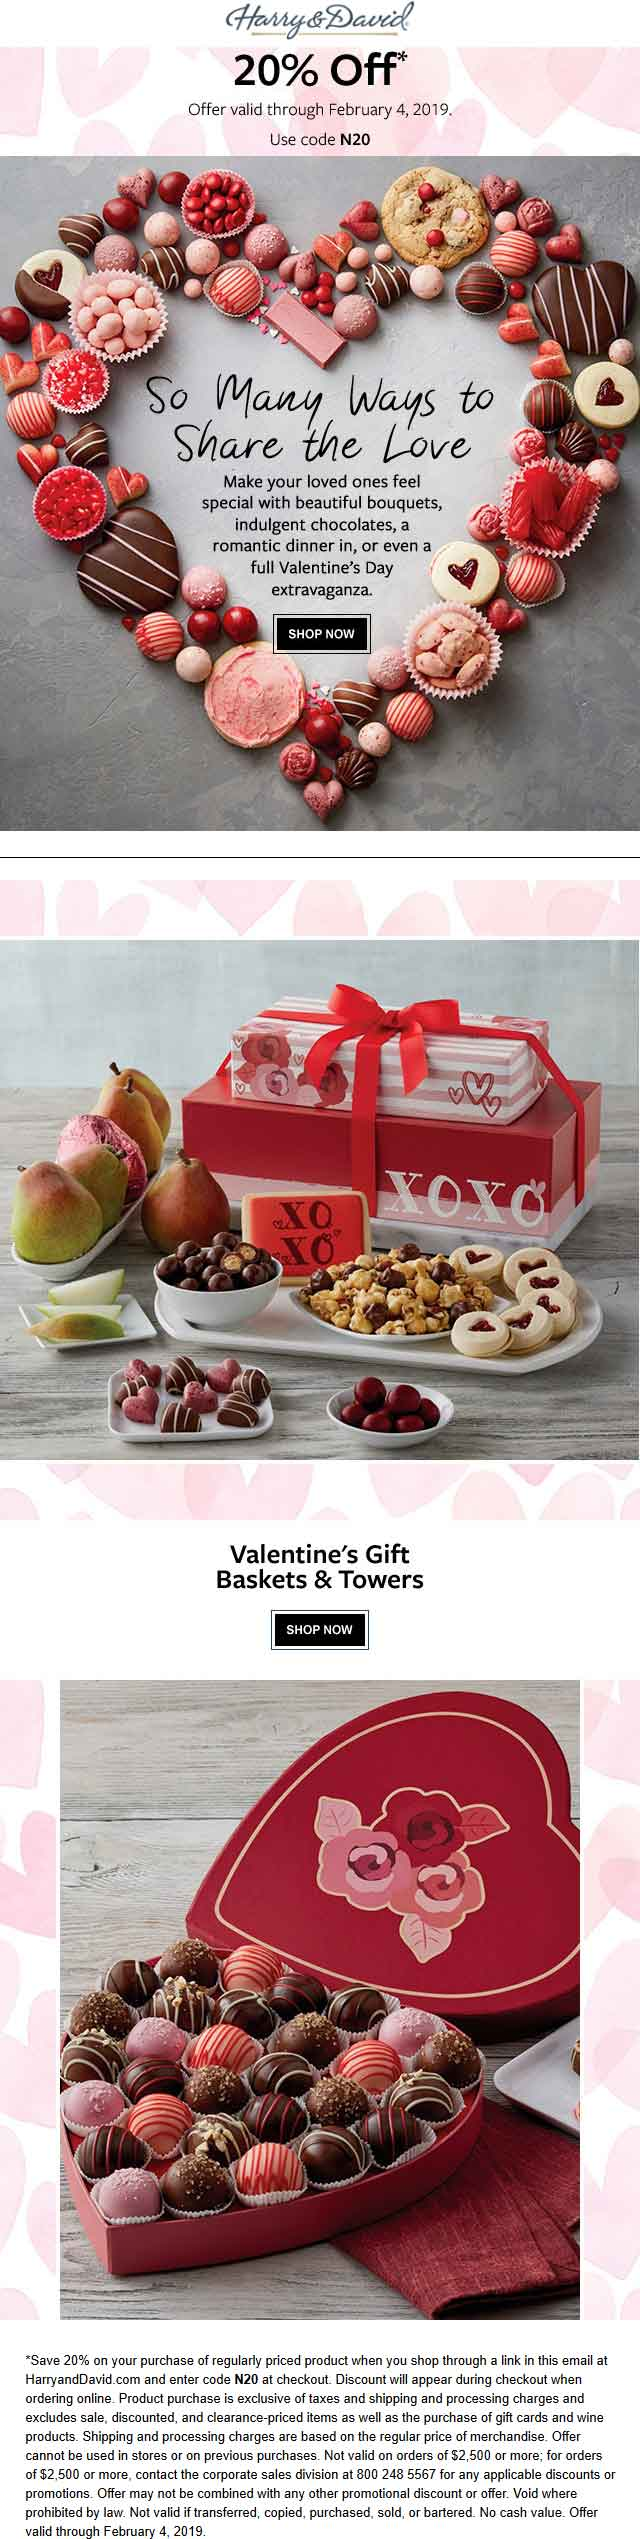 Harry & David Coupon November 2019 20% off Valentines gift boxes at Harry & David via promo code N20